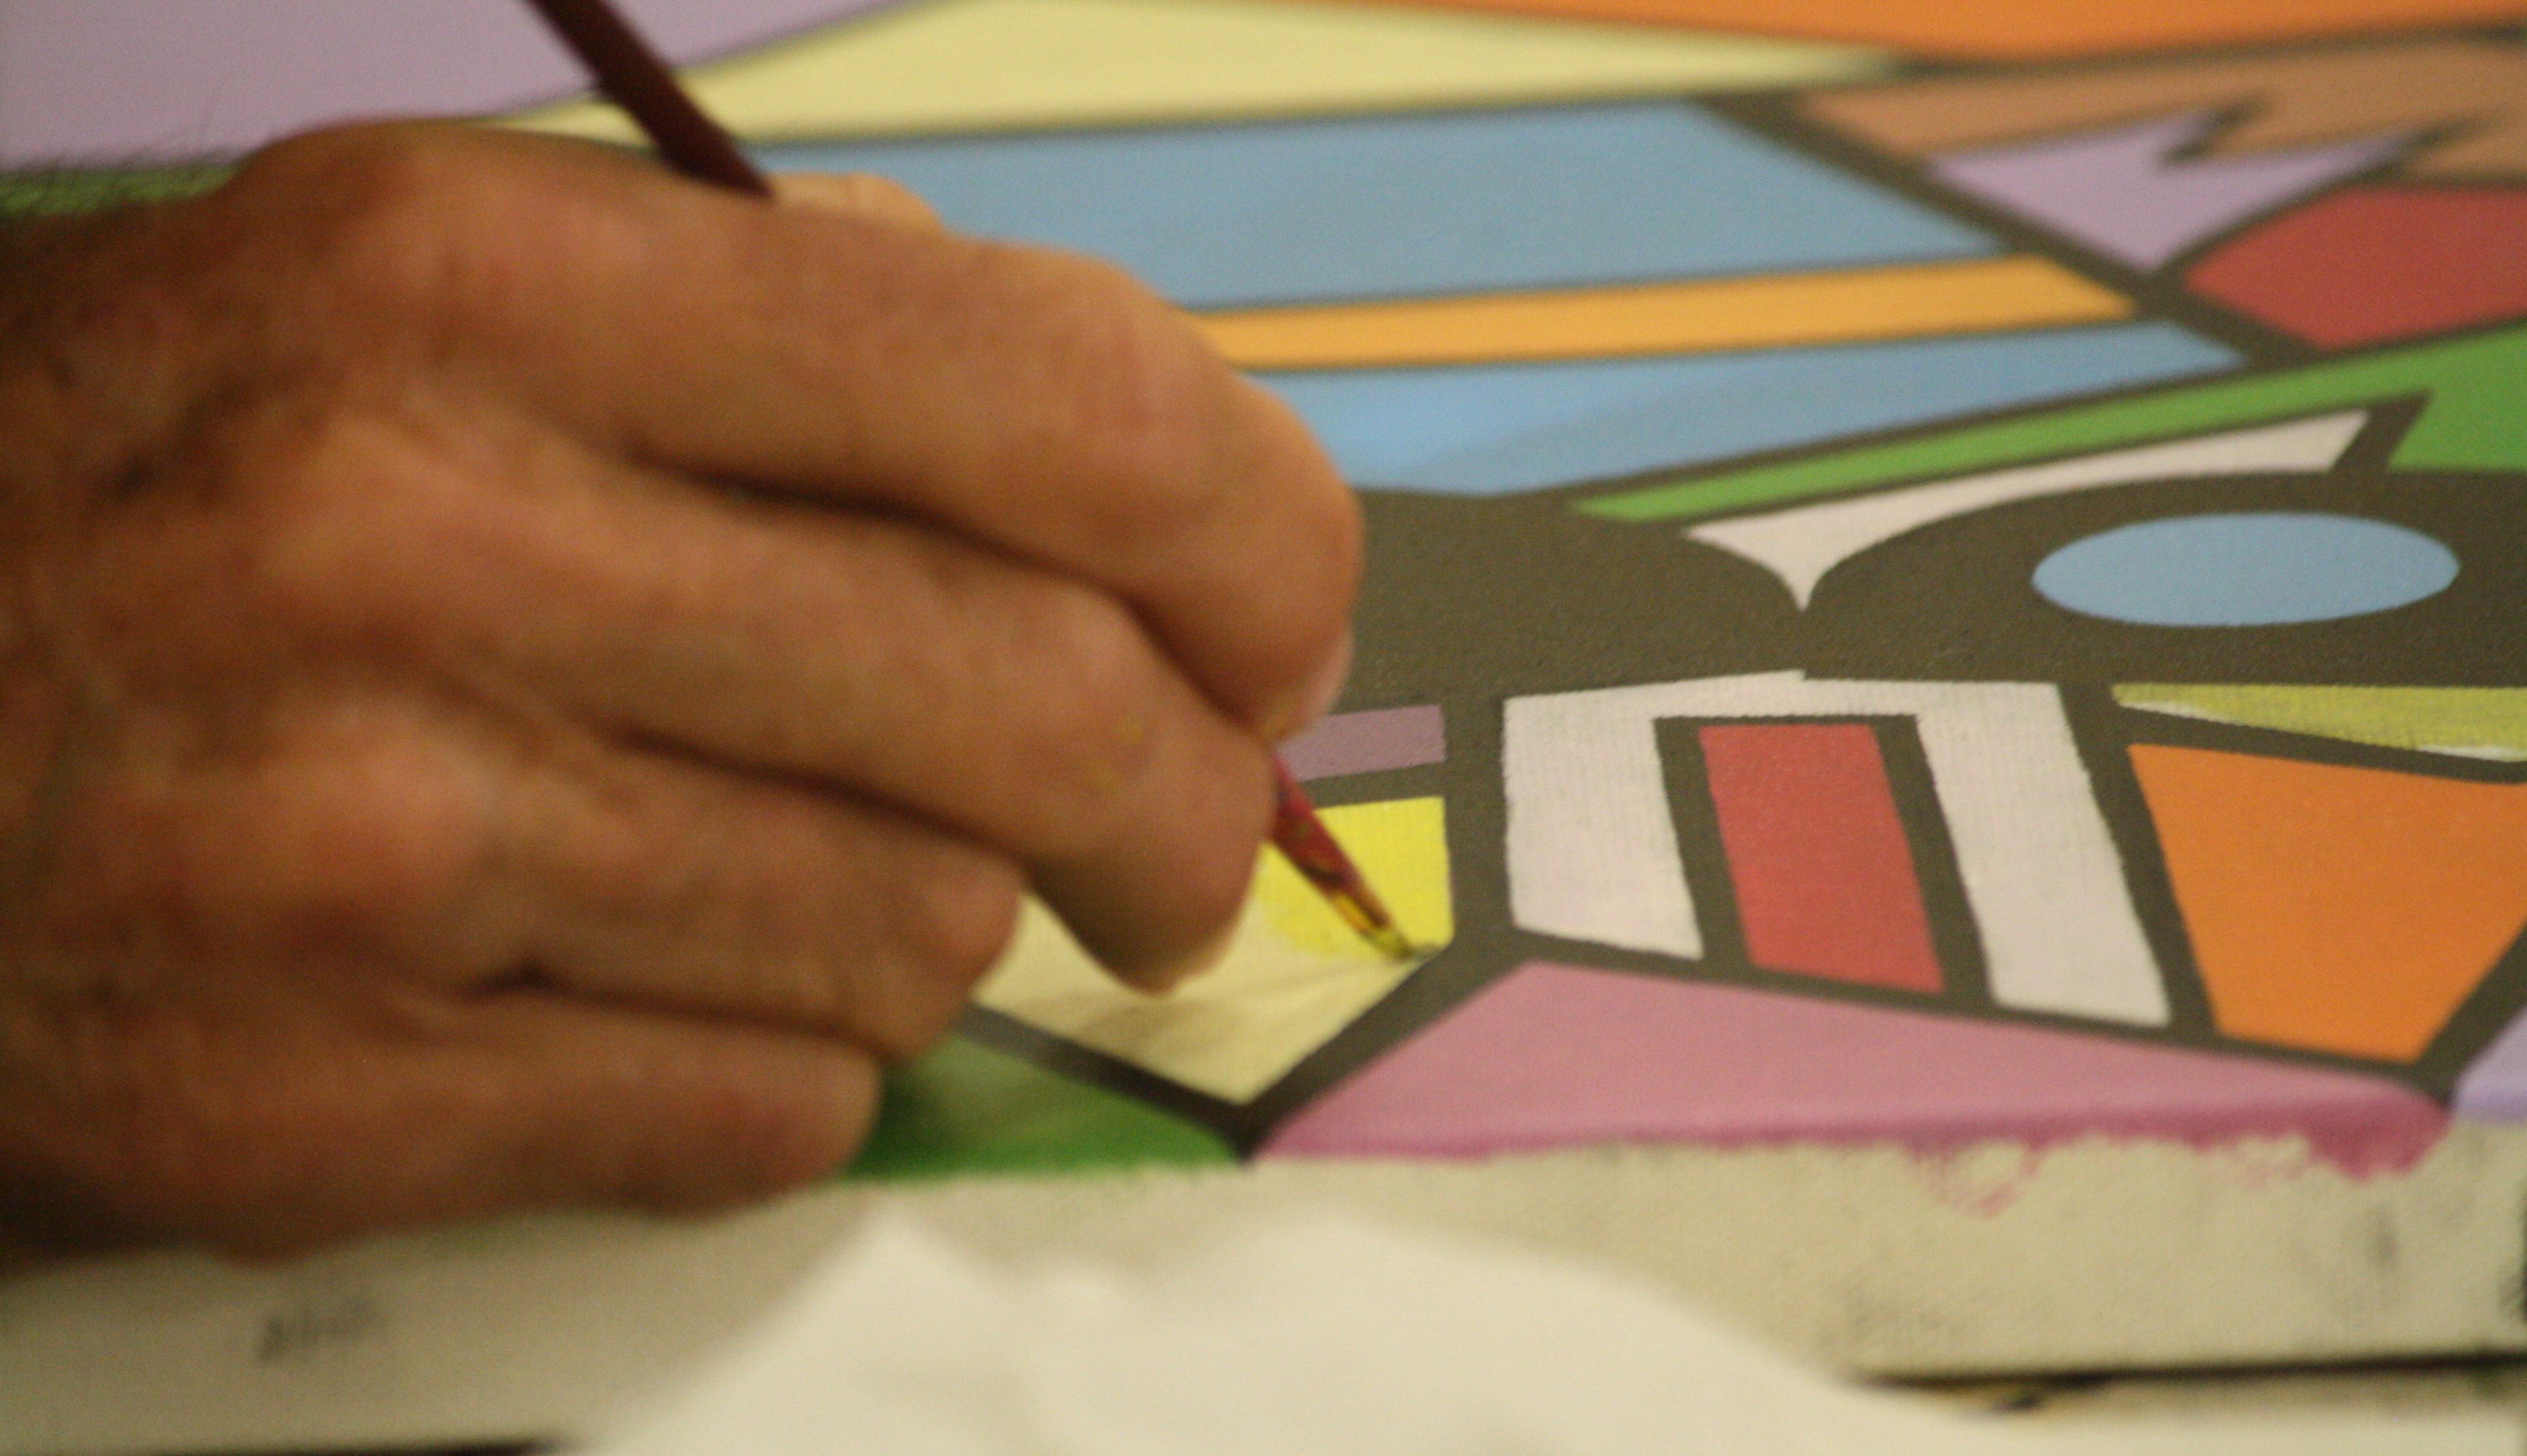 A hand painting art with a brush onto a thick piece of board